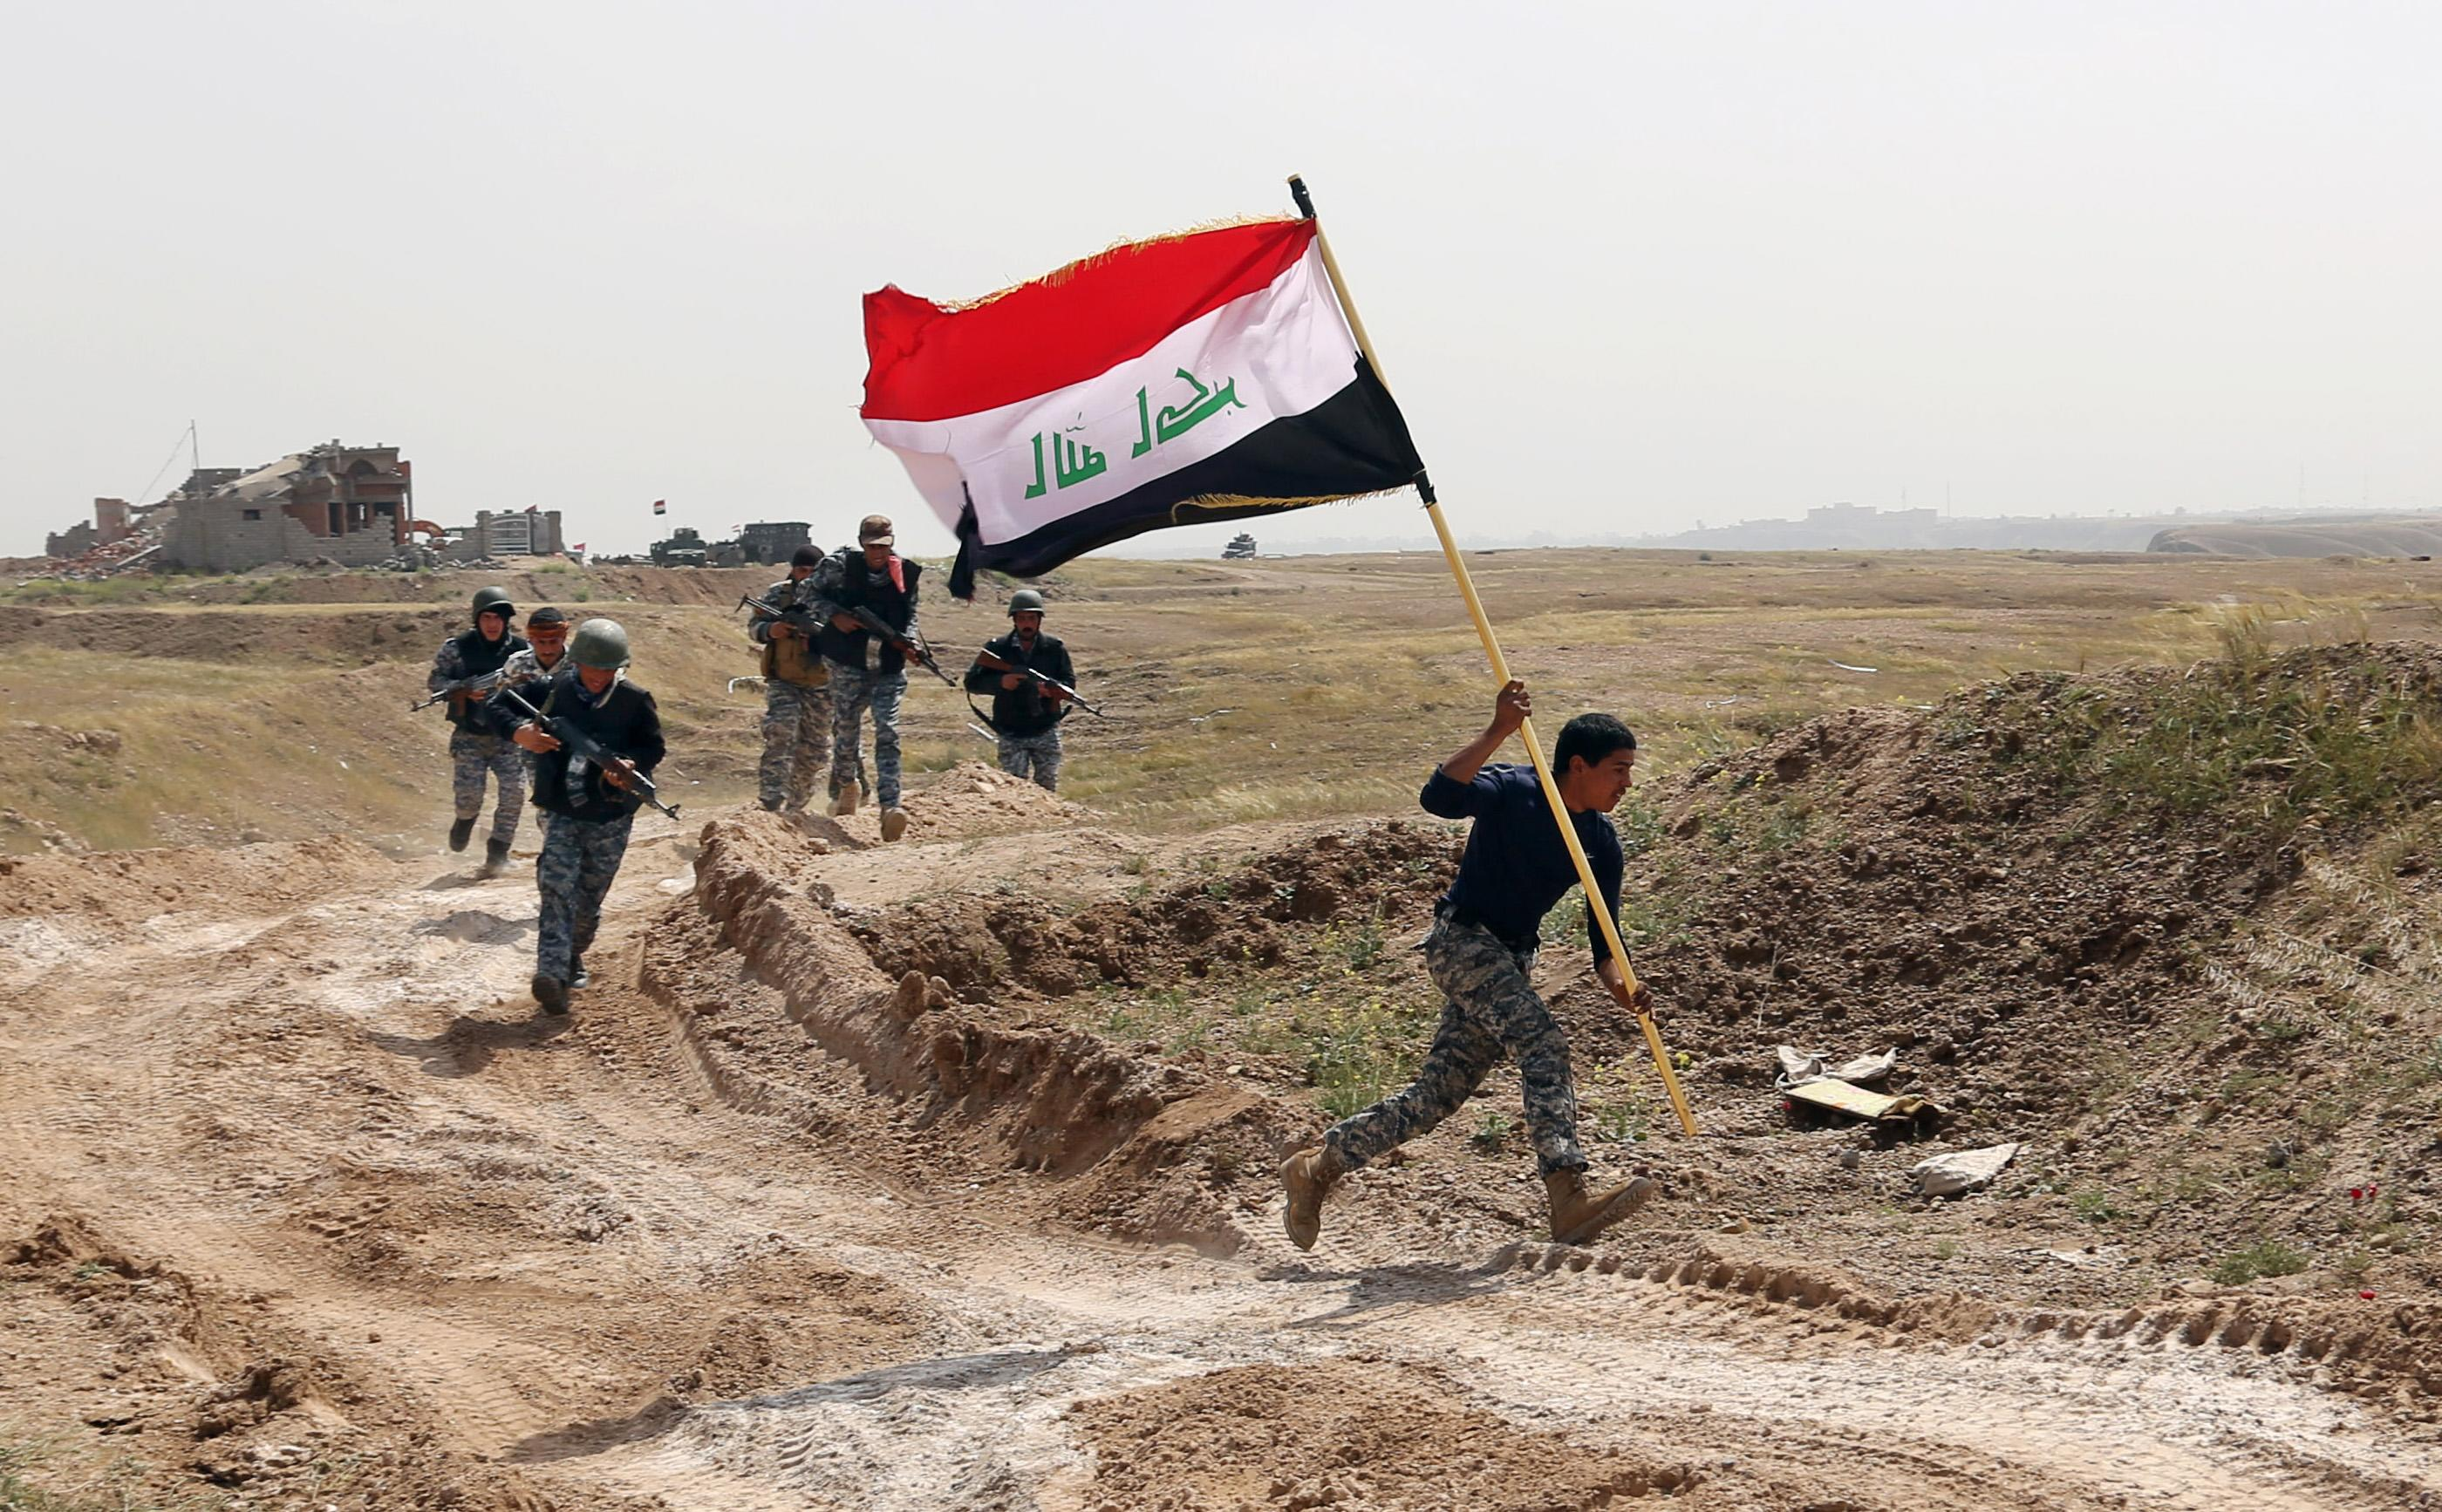 AP PHOTOS: Iraqi forces struggle to take back Tikrit